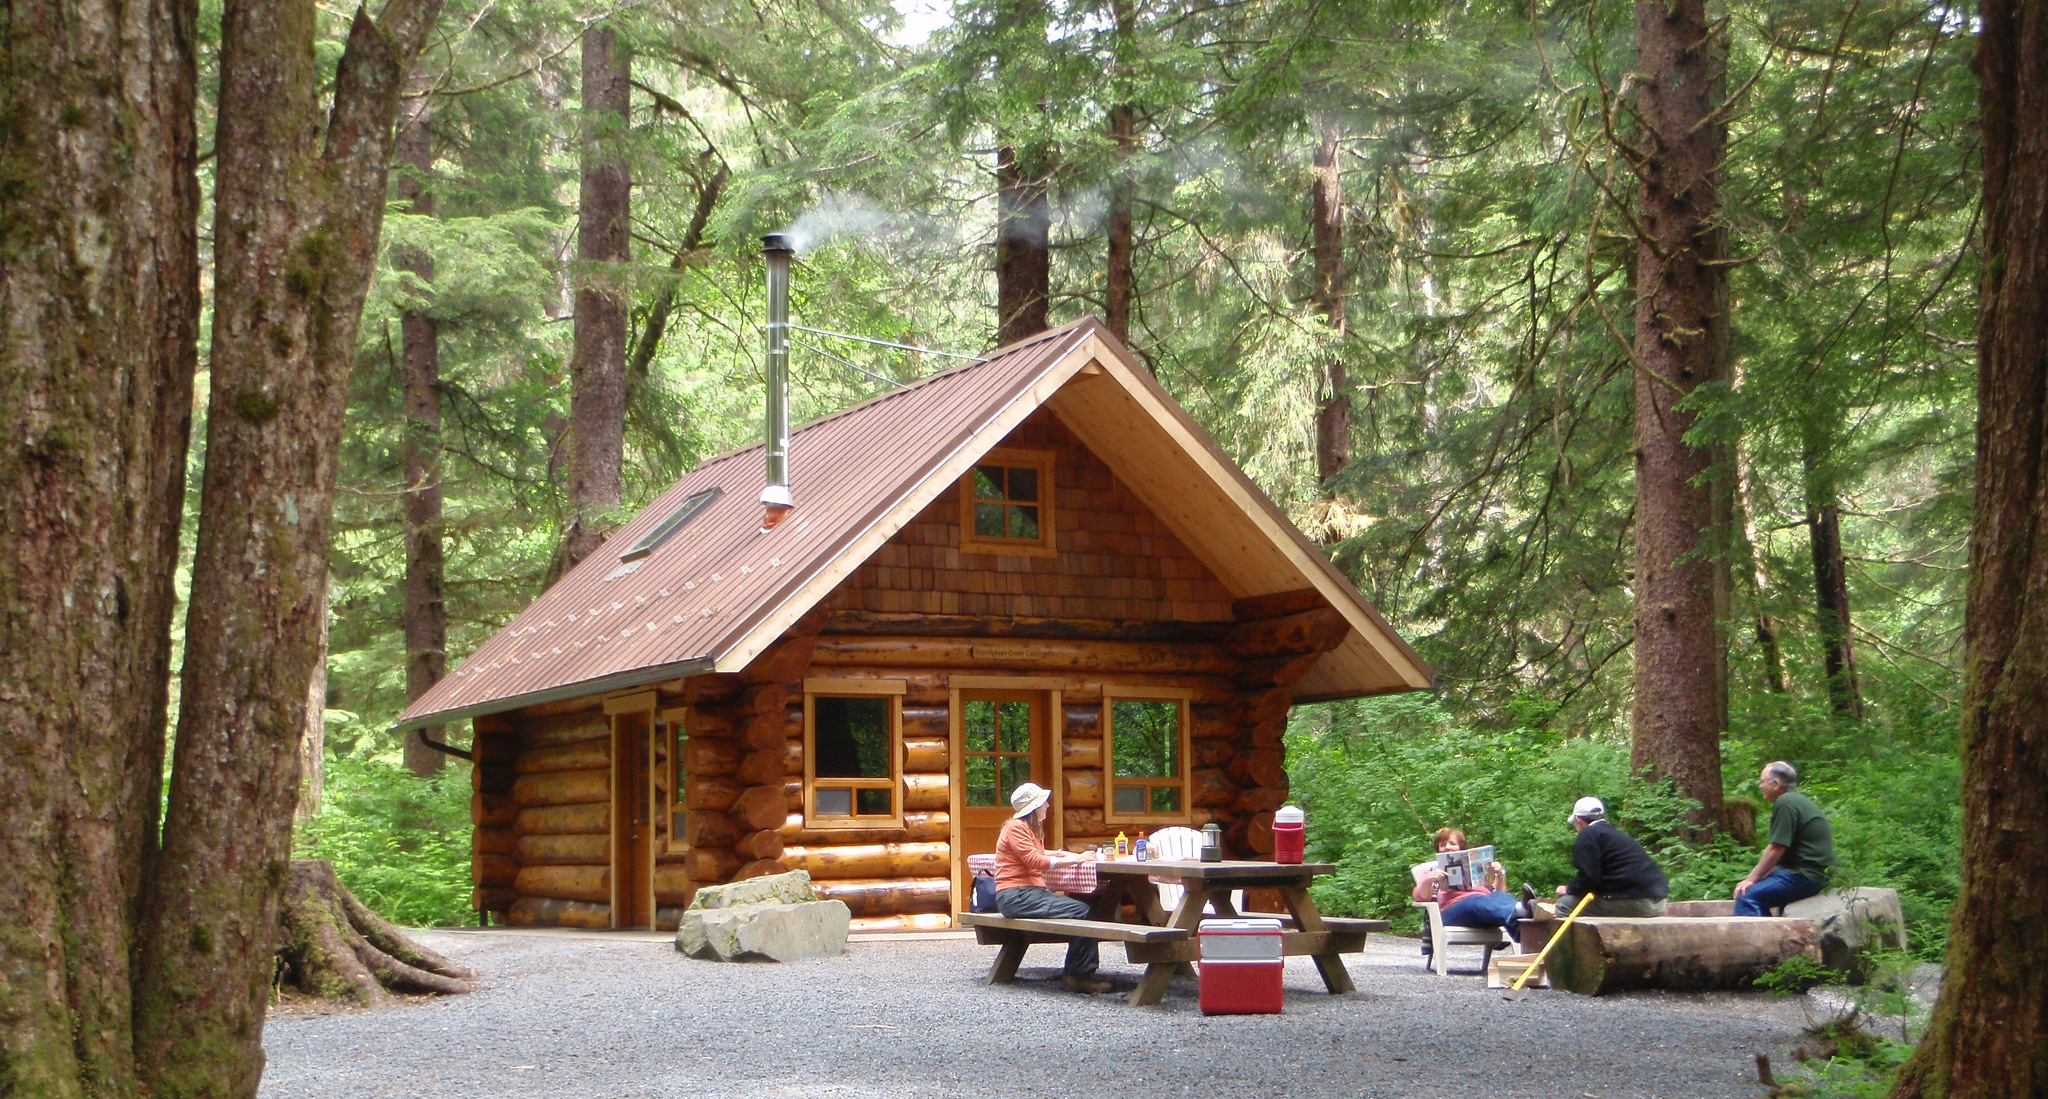 A photo of a family in a campground with a cabin in the background